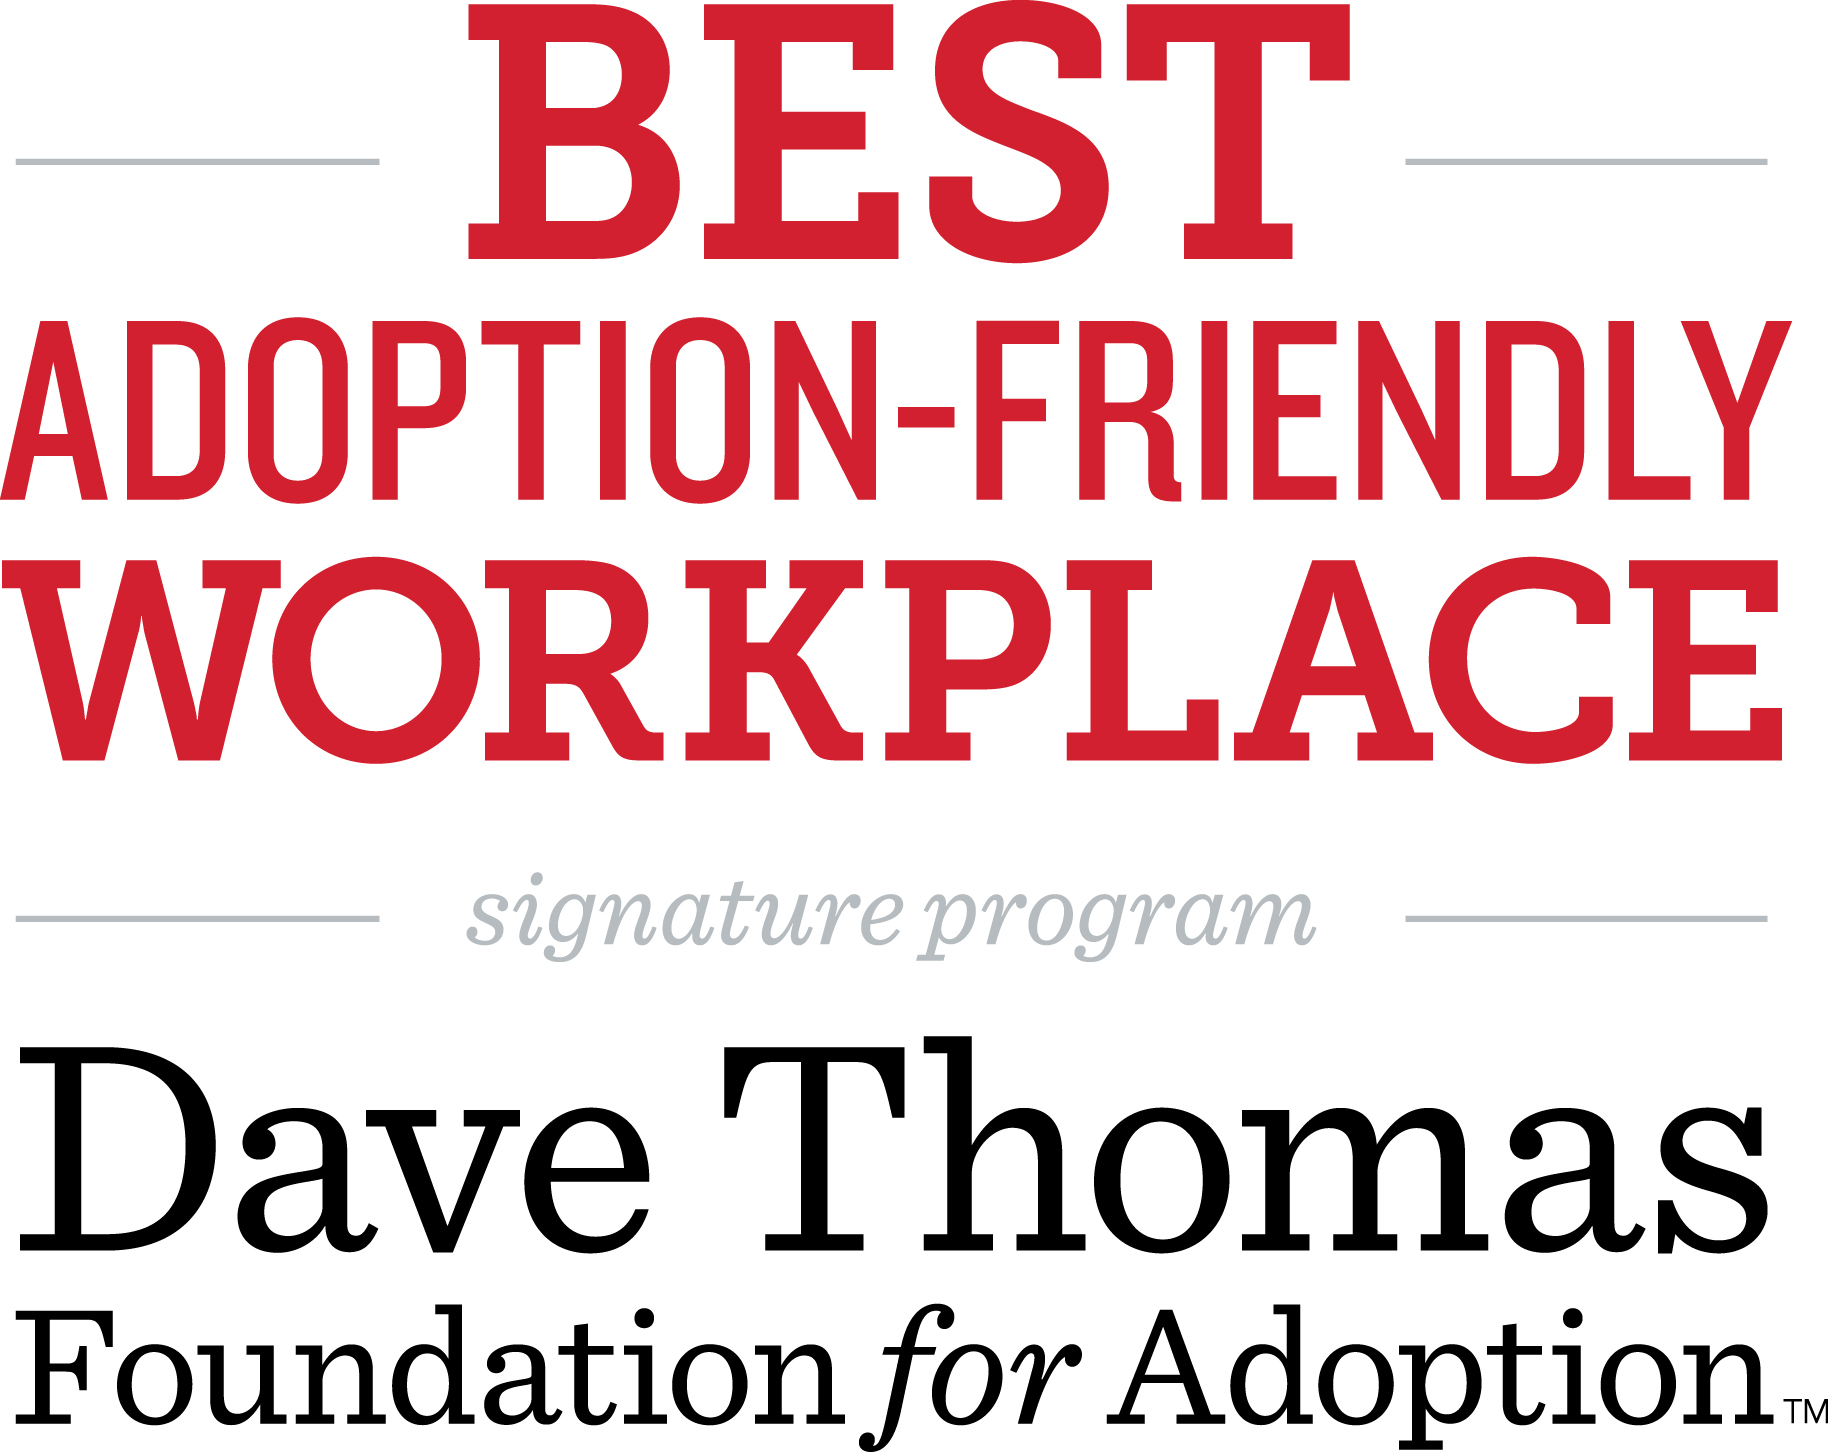 HHHunt Ranked as a Leading Adoption-Friendly Workplace